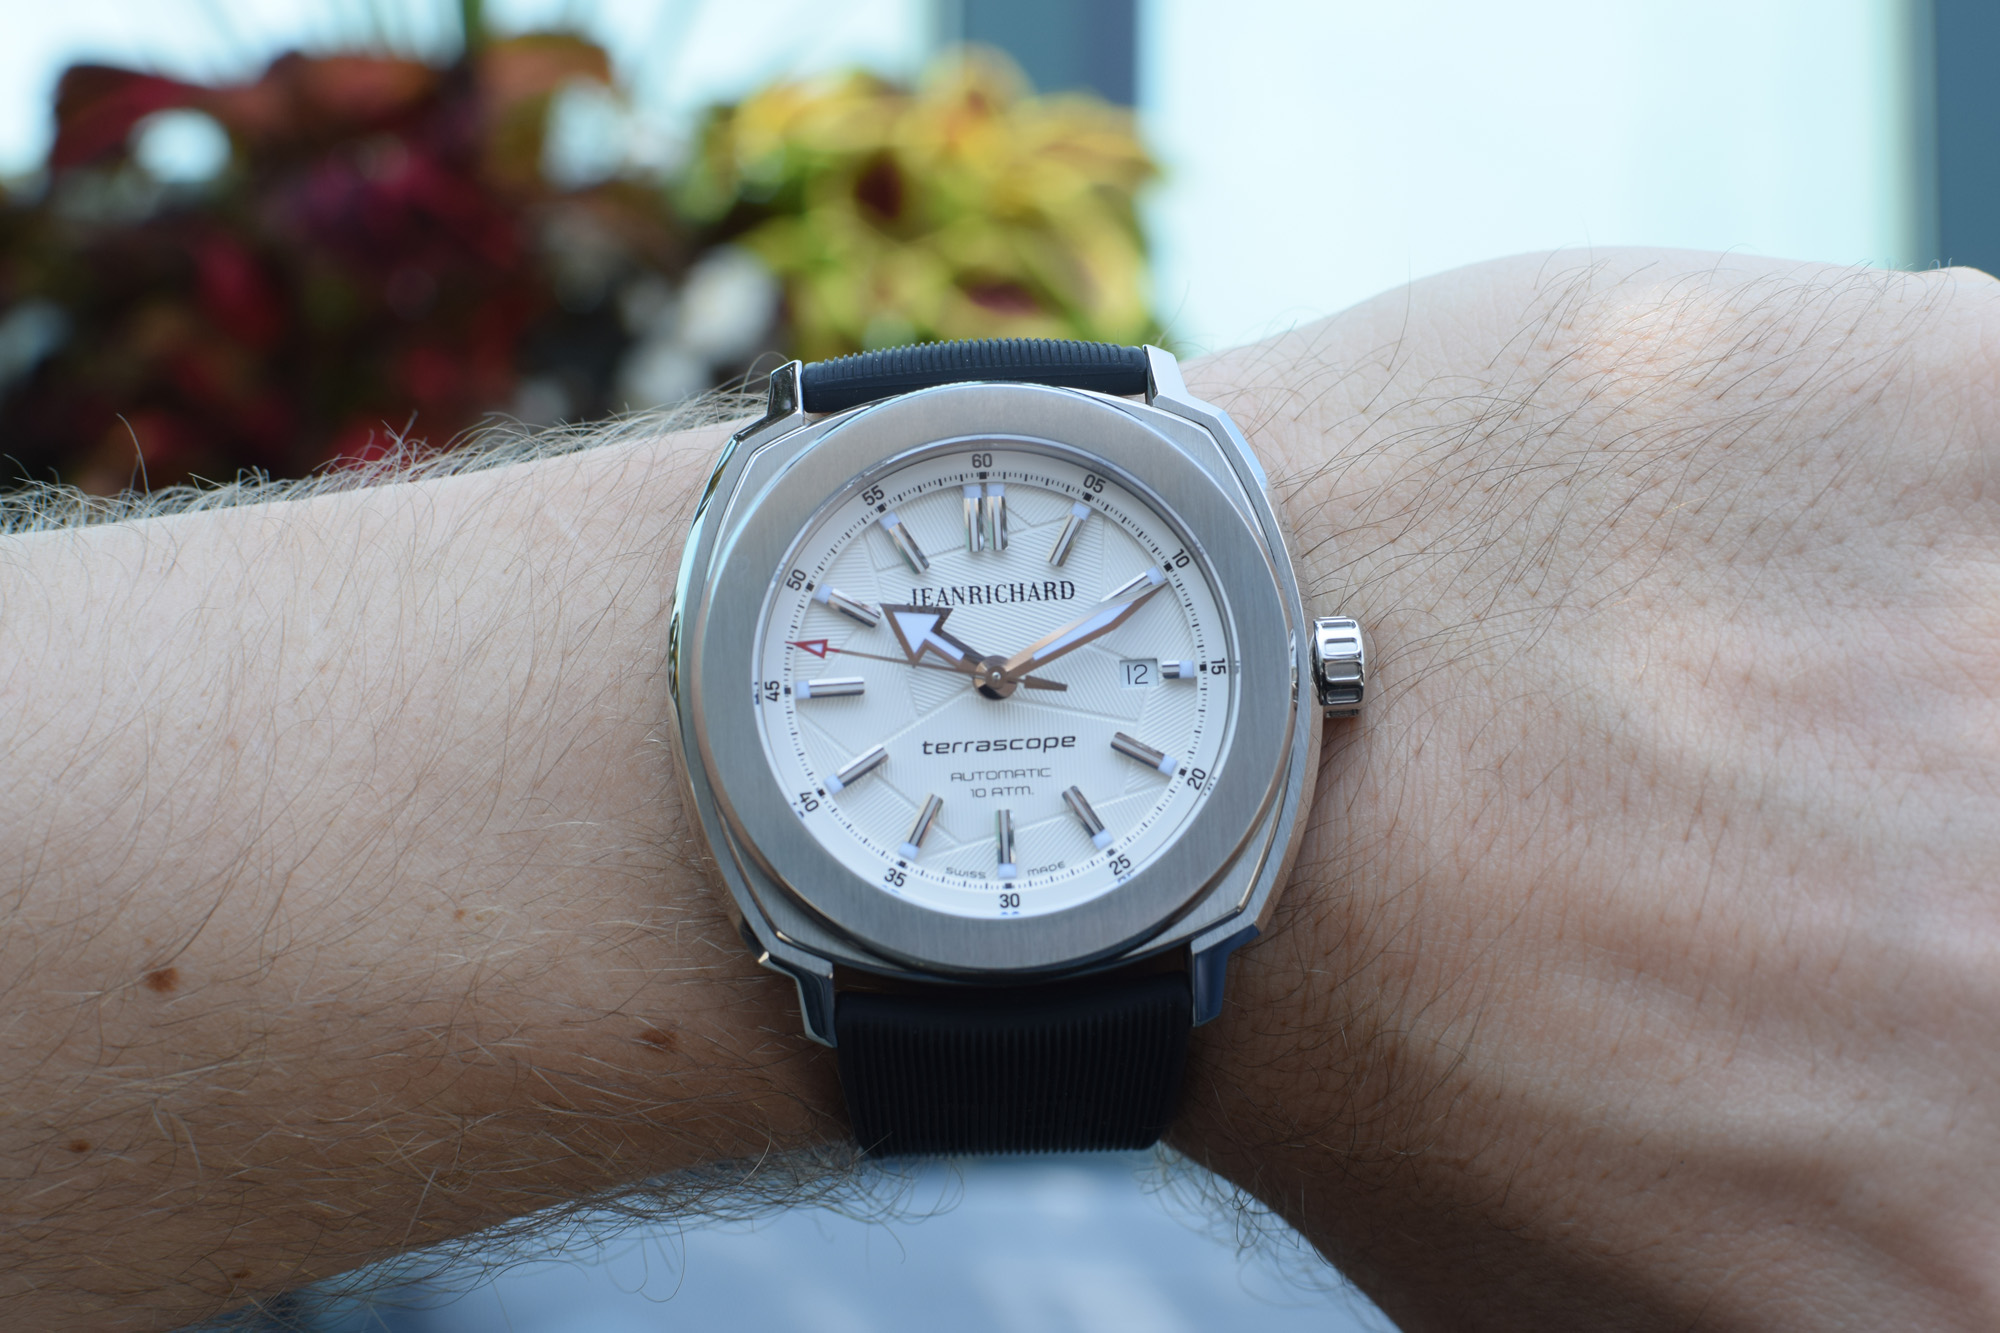 JeanRichard Terrascope White Stamped Dial